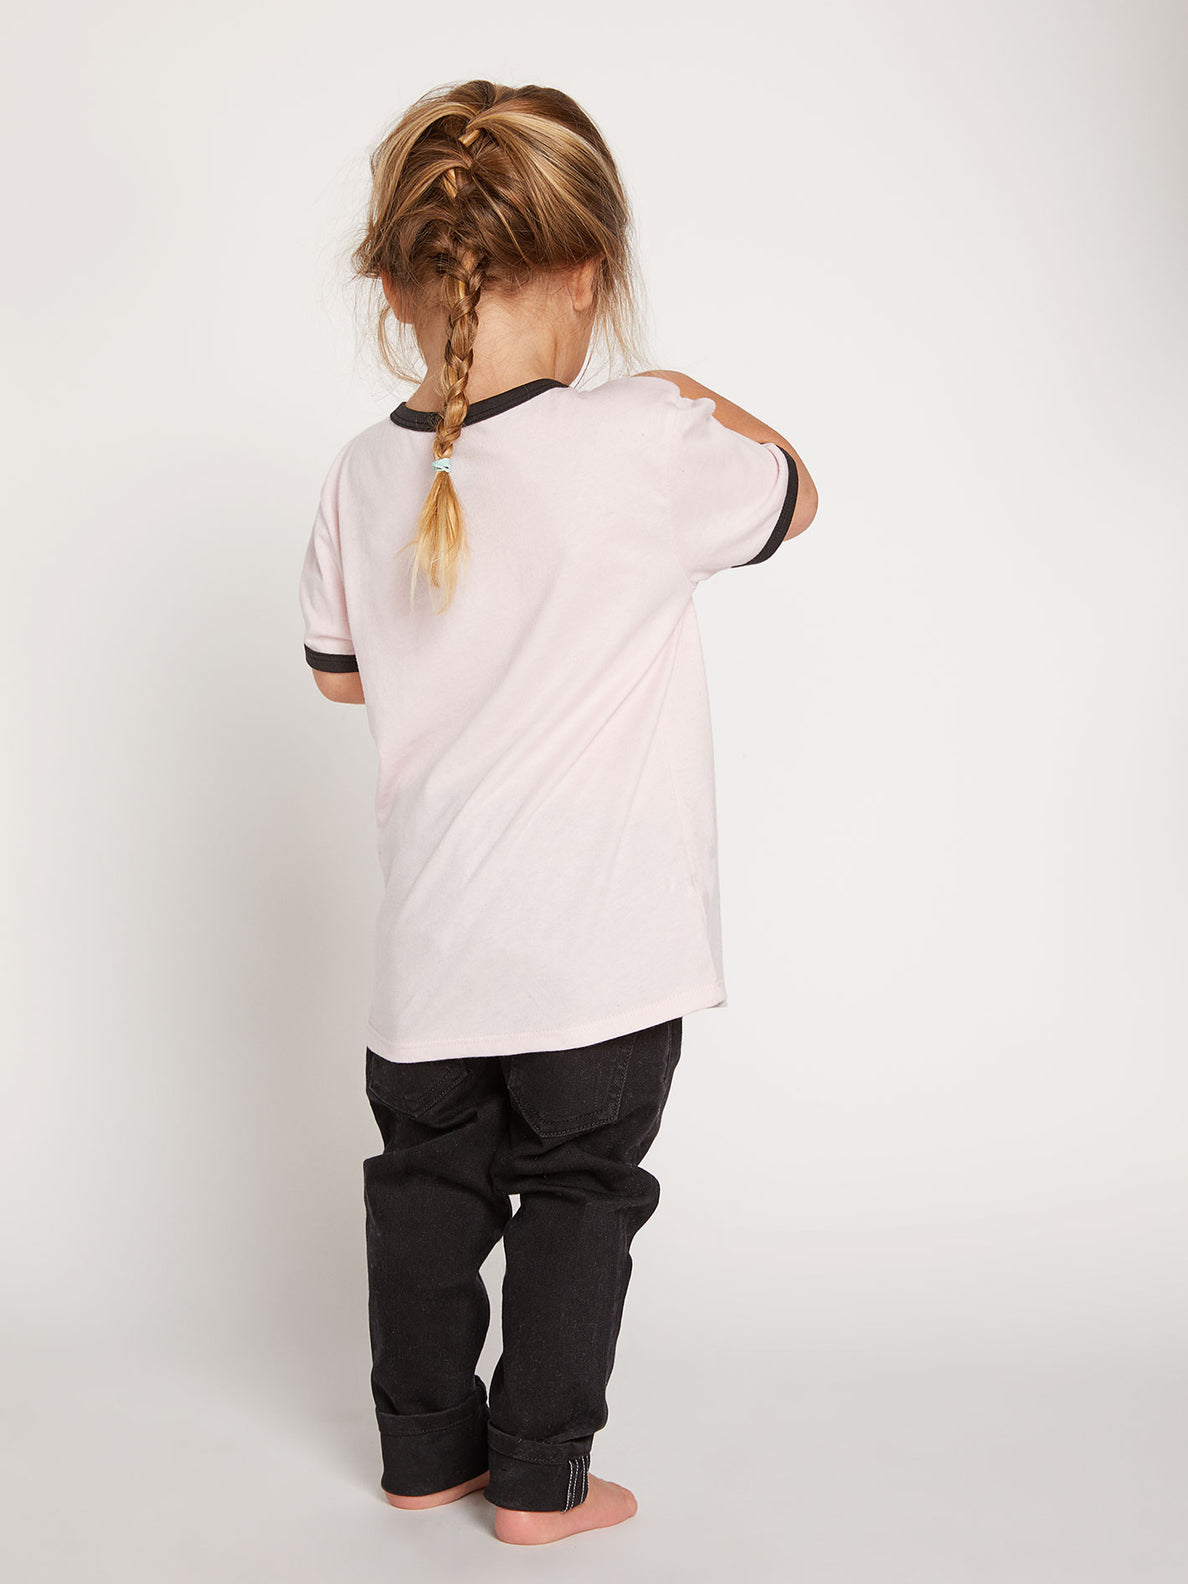 Little Girls Hey Slims Tee In Blush Pink, Back View